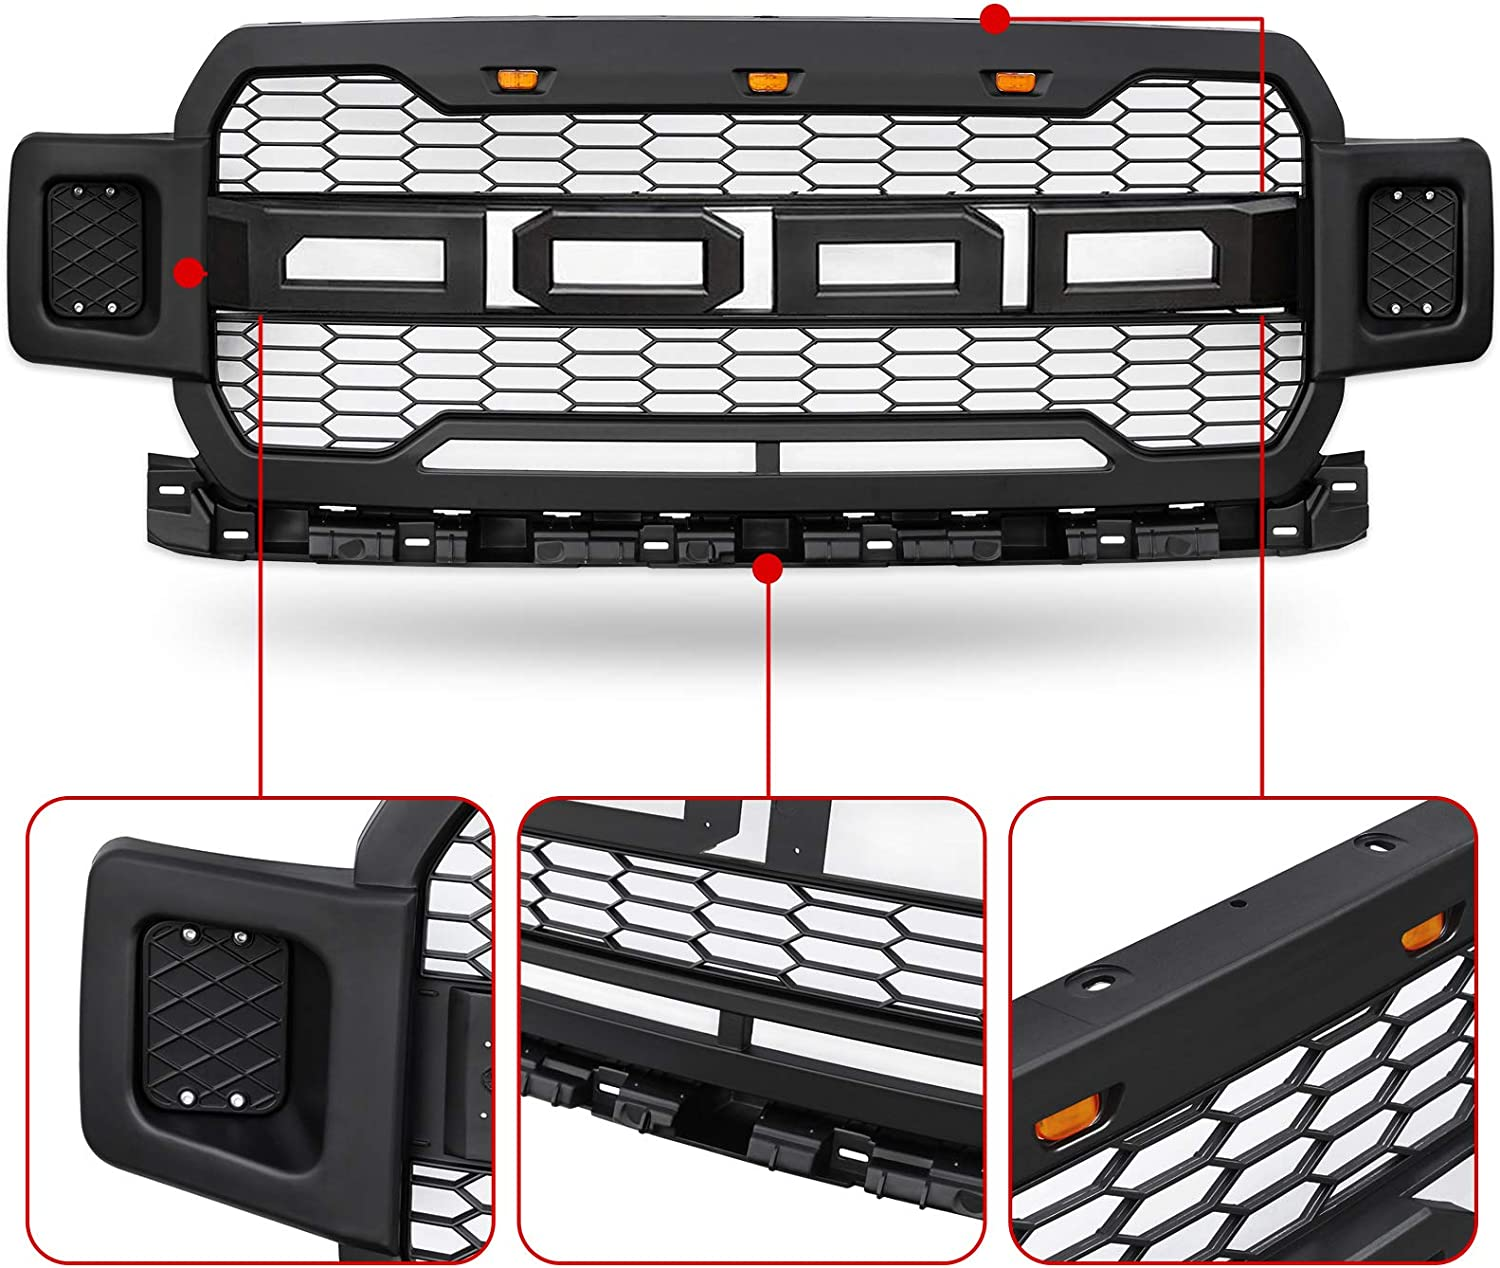 Modifying Front Grille Fits 2018-2019 FORD F150 ABS Mattle Raptor Style Honeycomb Grill with Conversion Letter Black